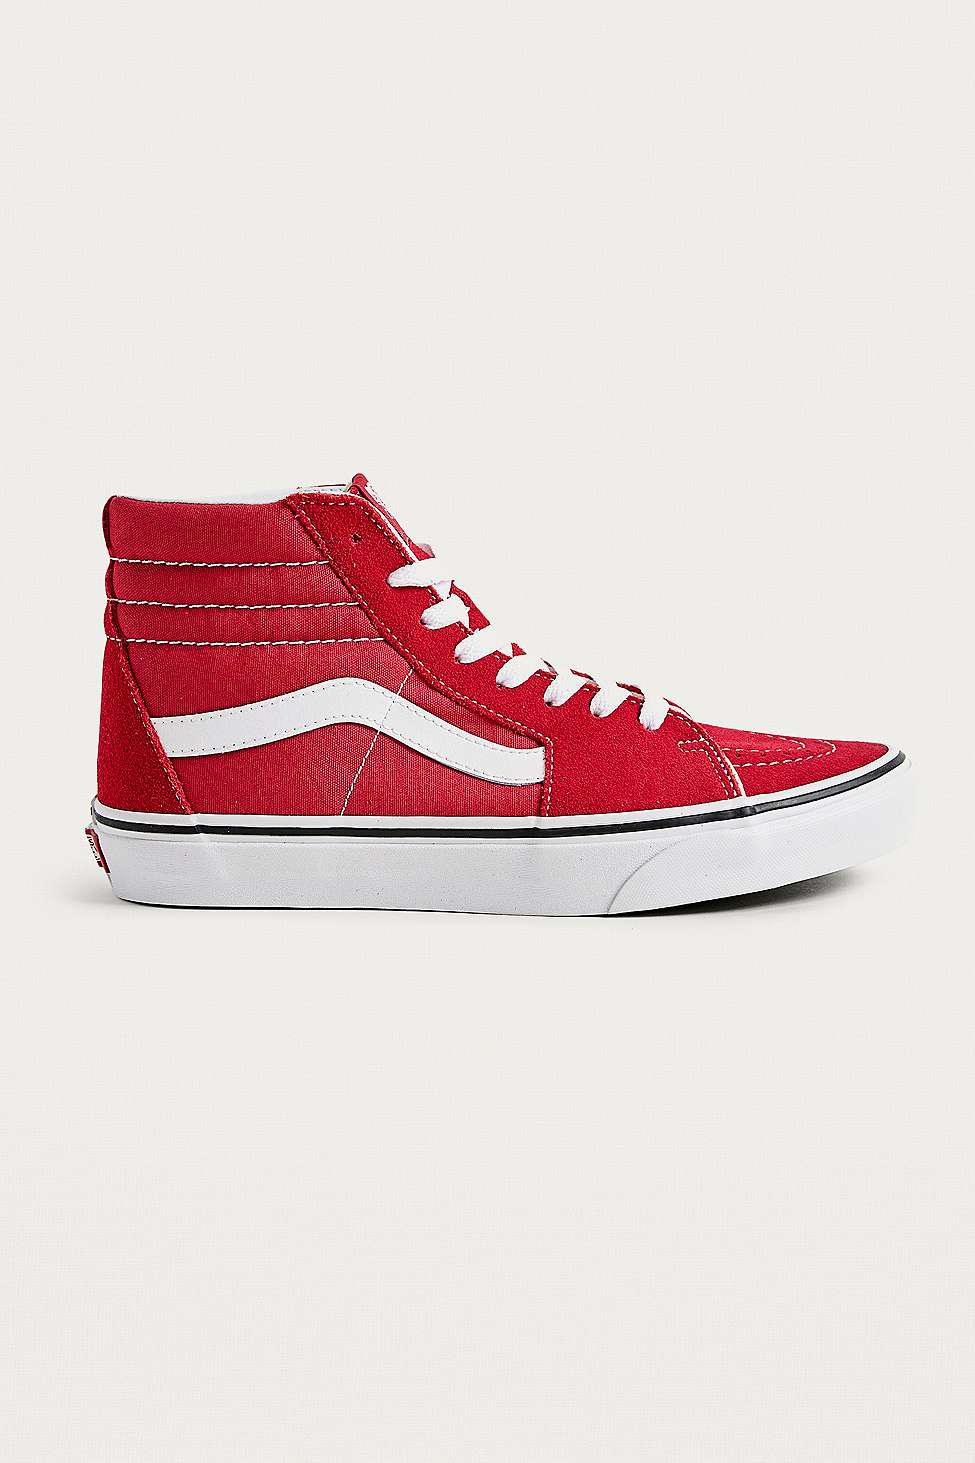 66a886966977b Vans Sk8-hi Red Trainers in Red for Men - Lyst